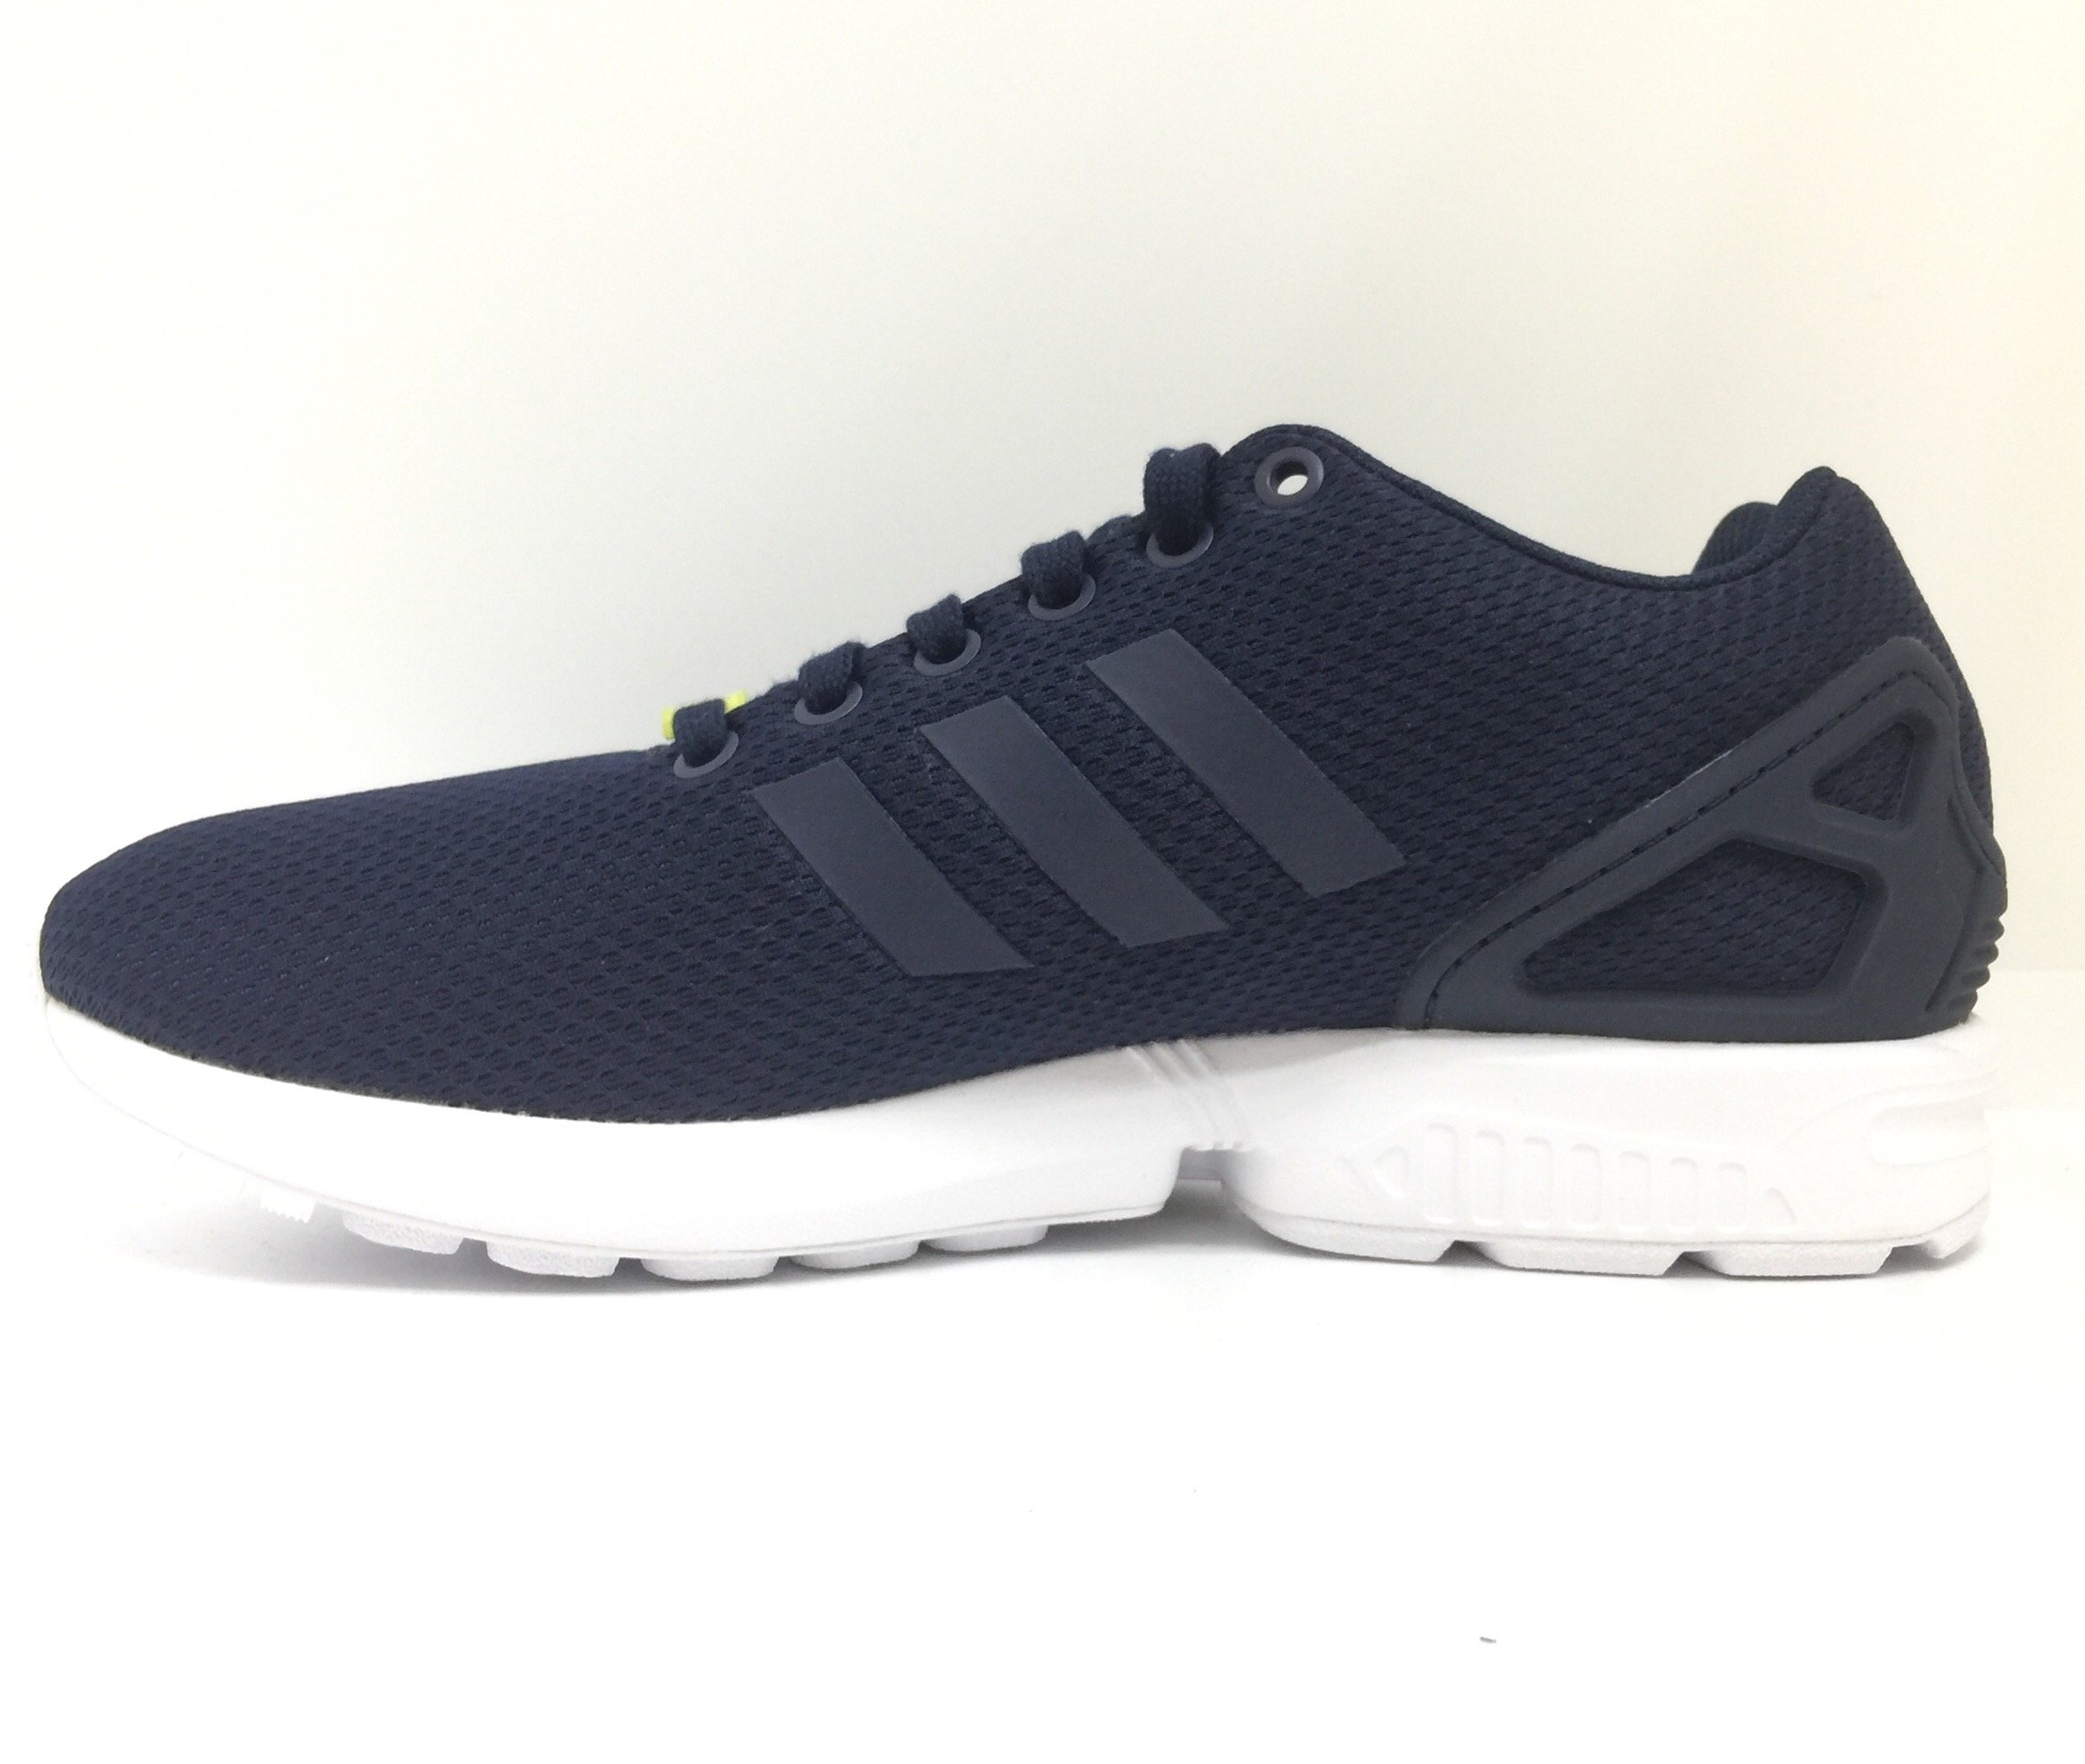 innovative design 9521b 50632 Adidas Zx Flux Scarpe da Ginnastica Originals blu scuro Bianco M19841 ZX750  700 - mainstreetblytheville.org